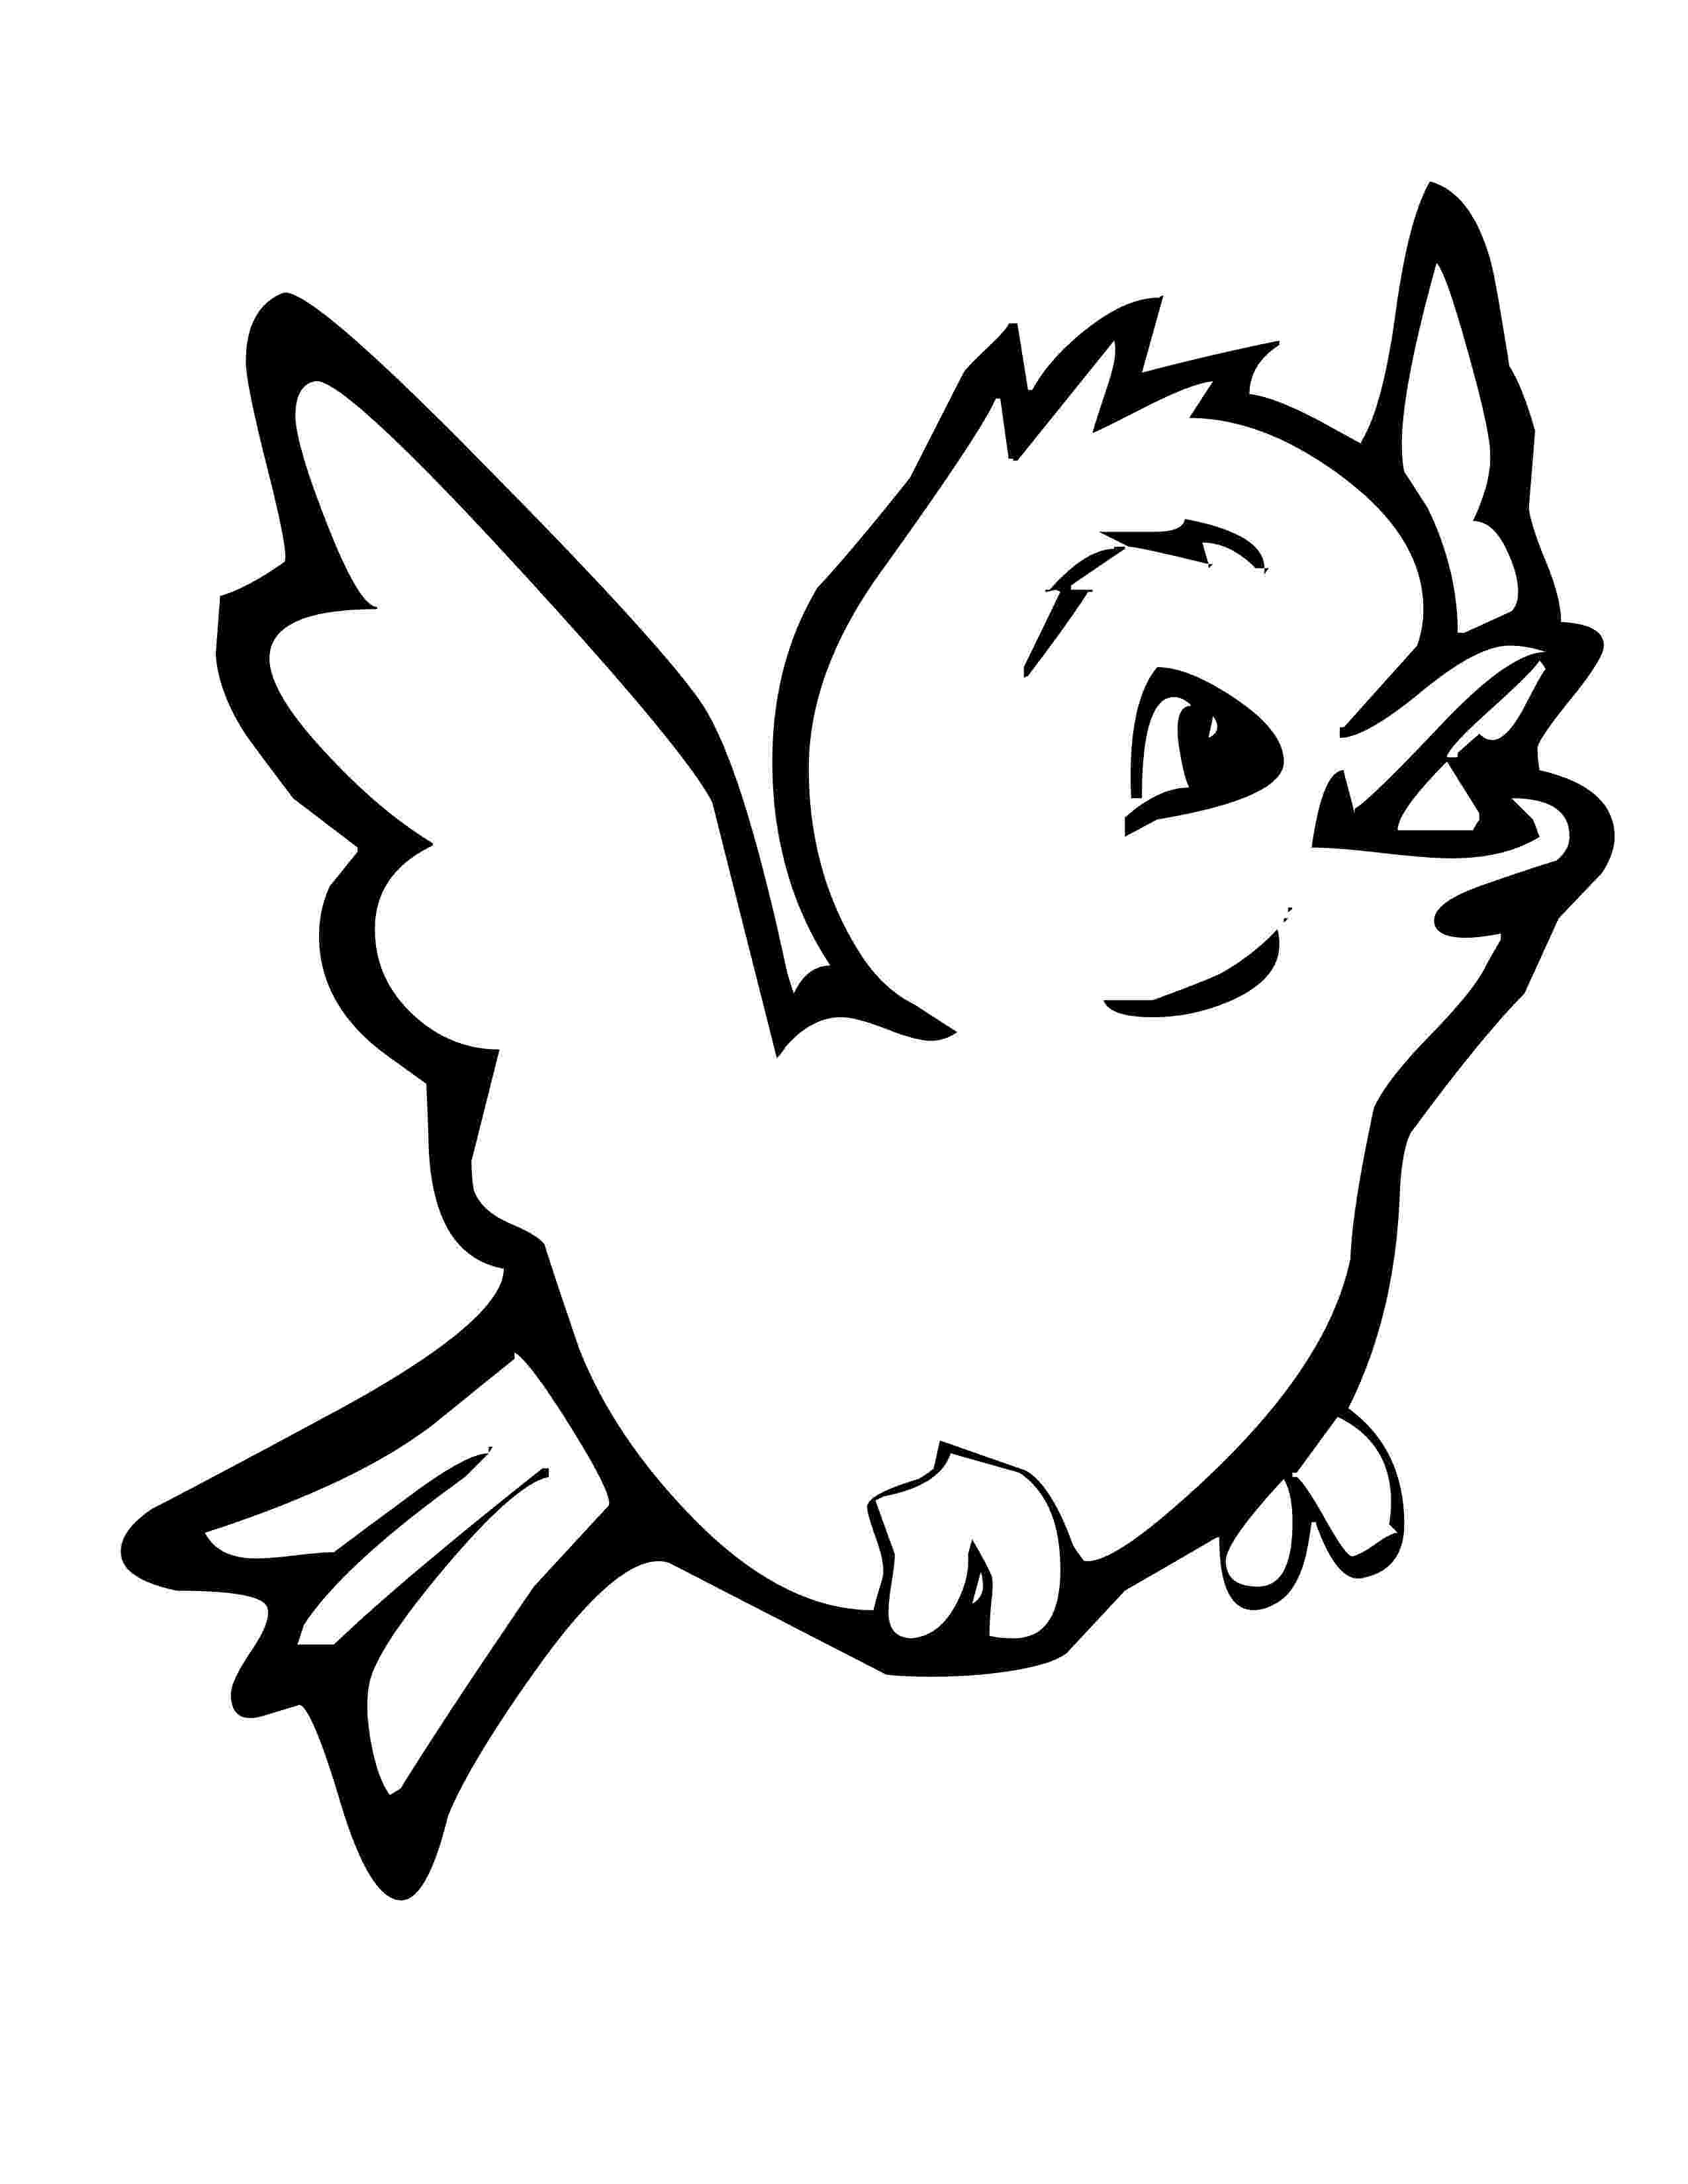 colouring pages with birds kids page birds coloring pages printable birds coloring pages colouring birds with